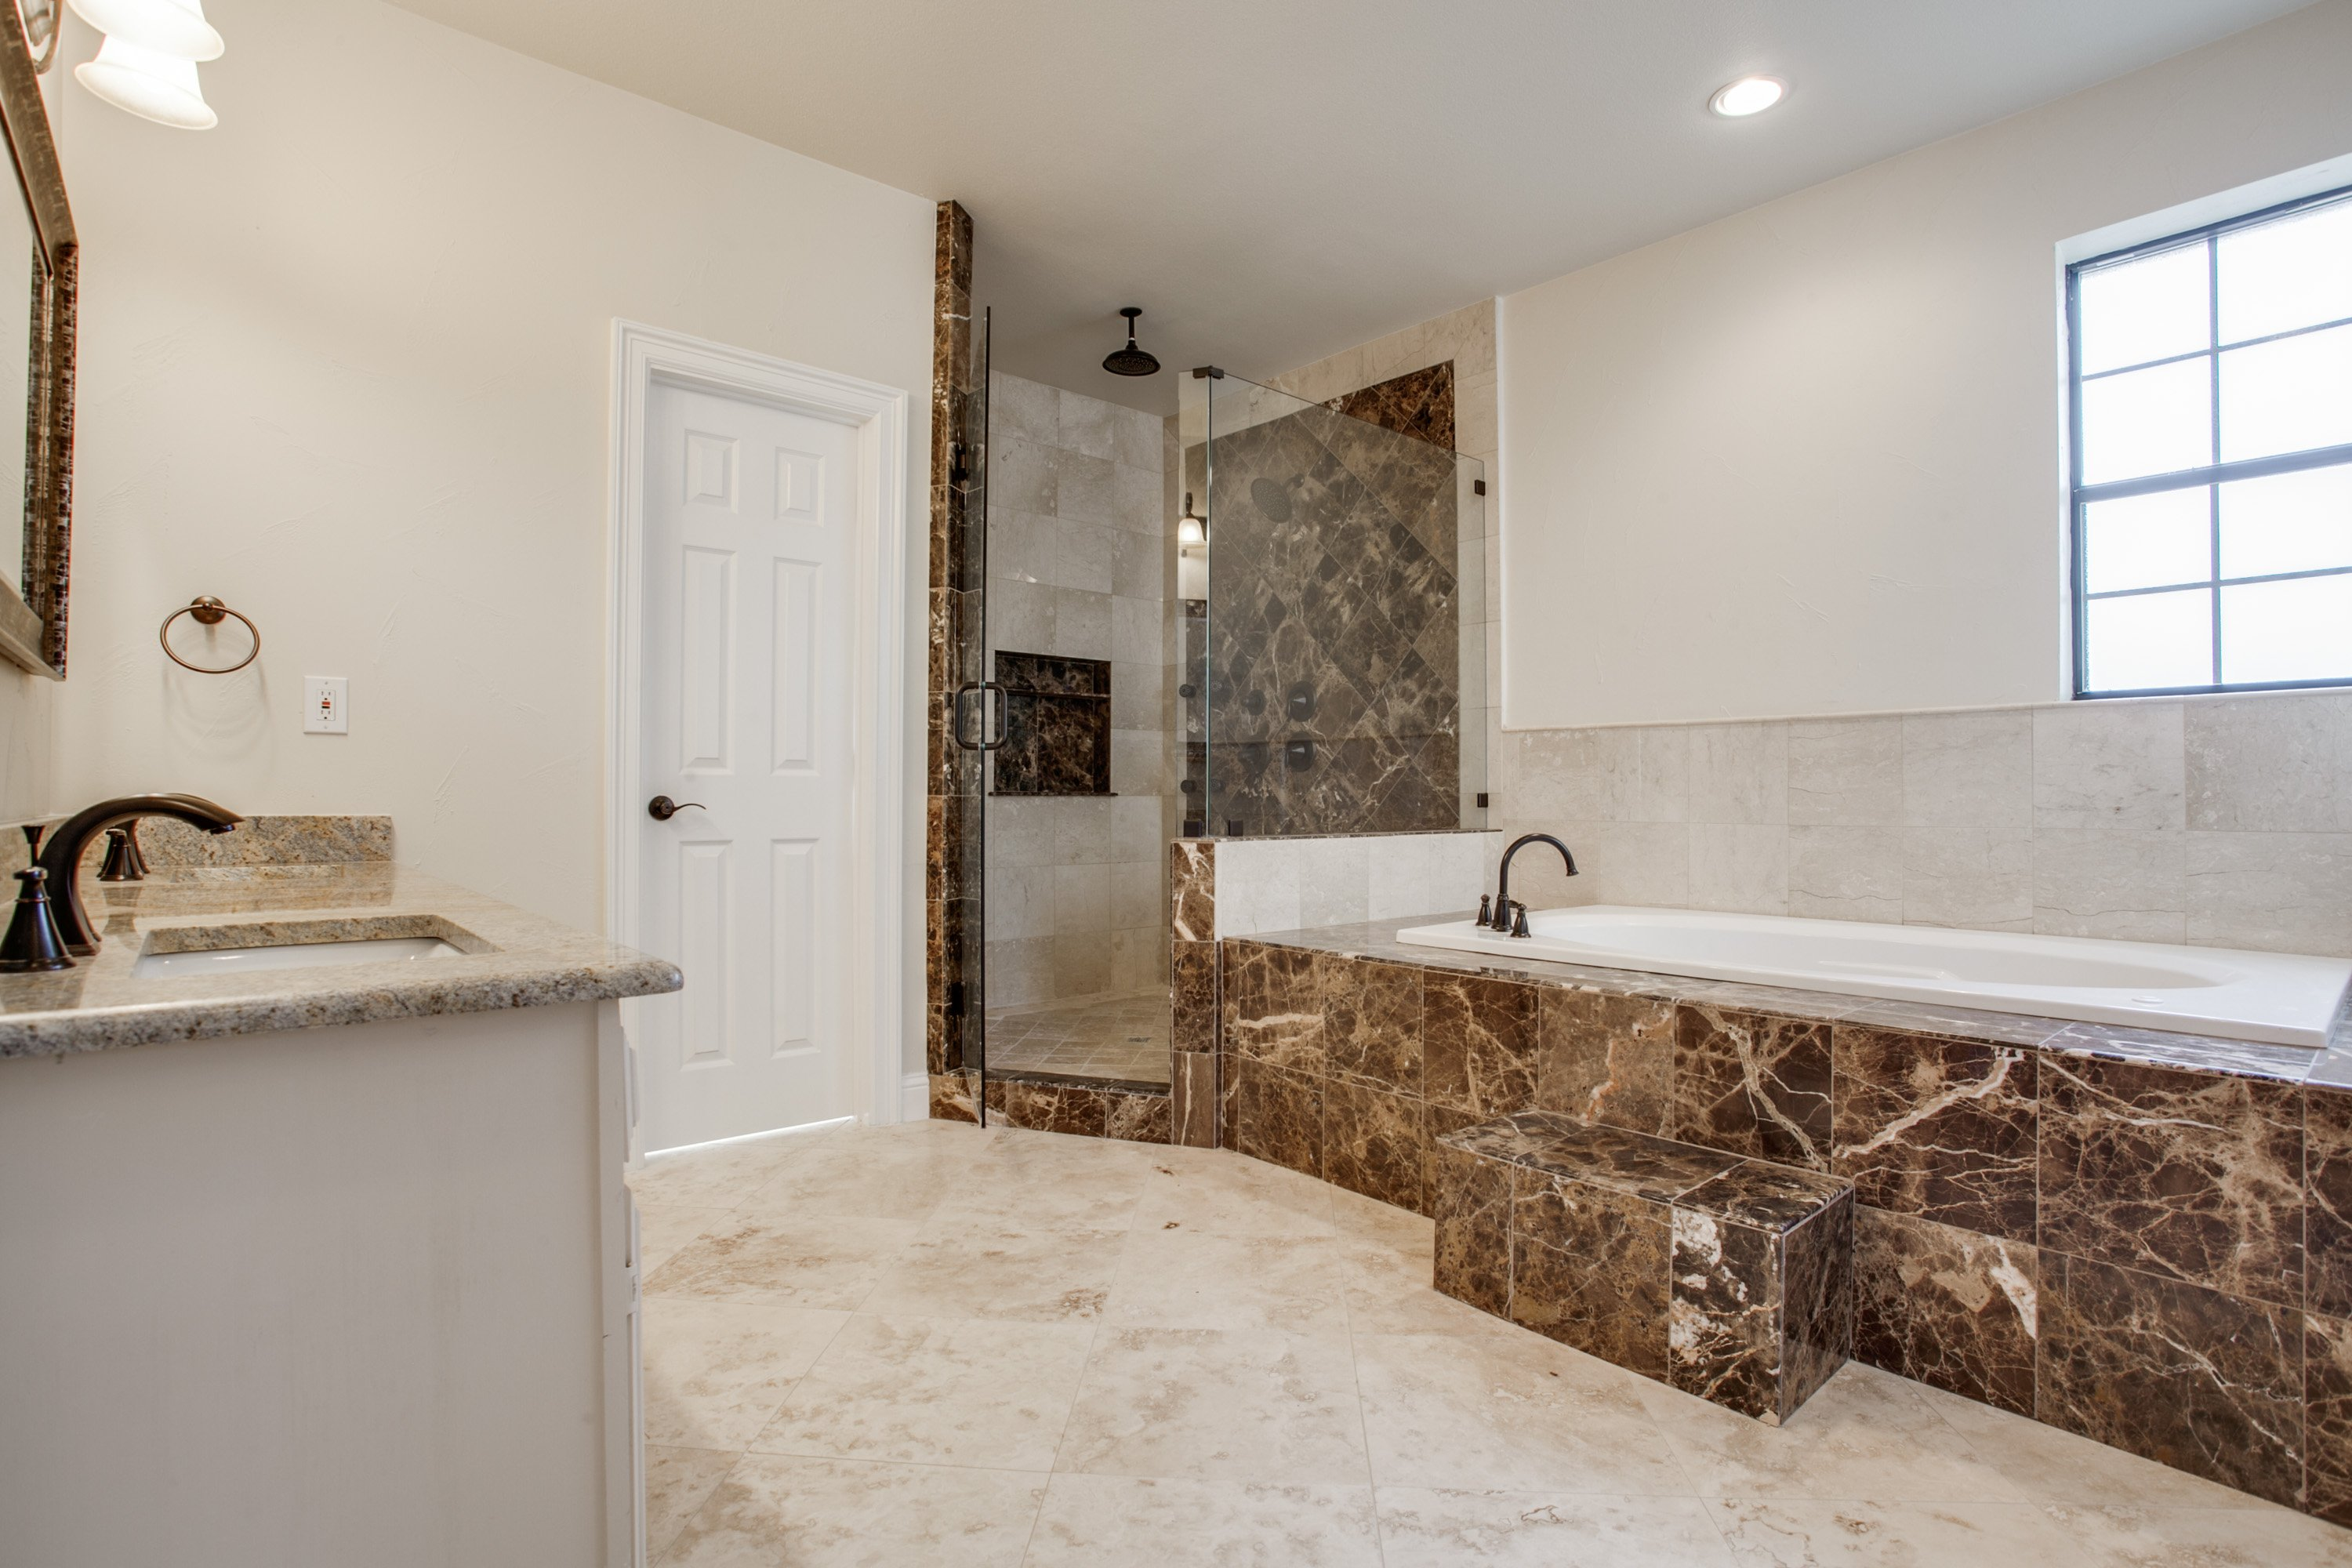 Fresh Listing Friday: All the Amenities